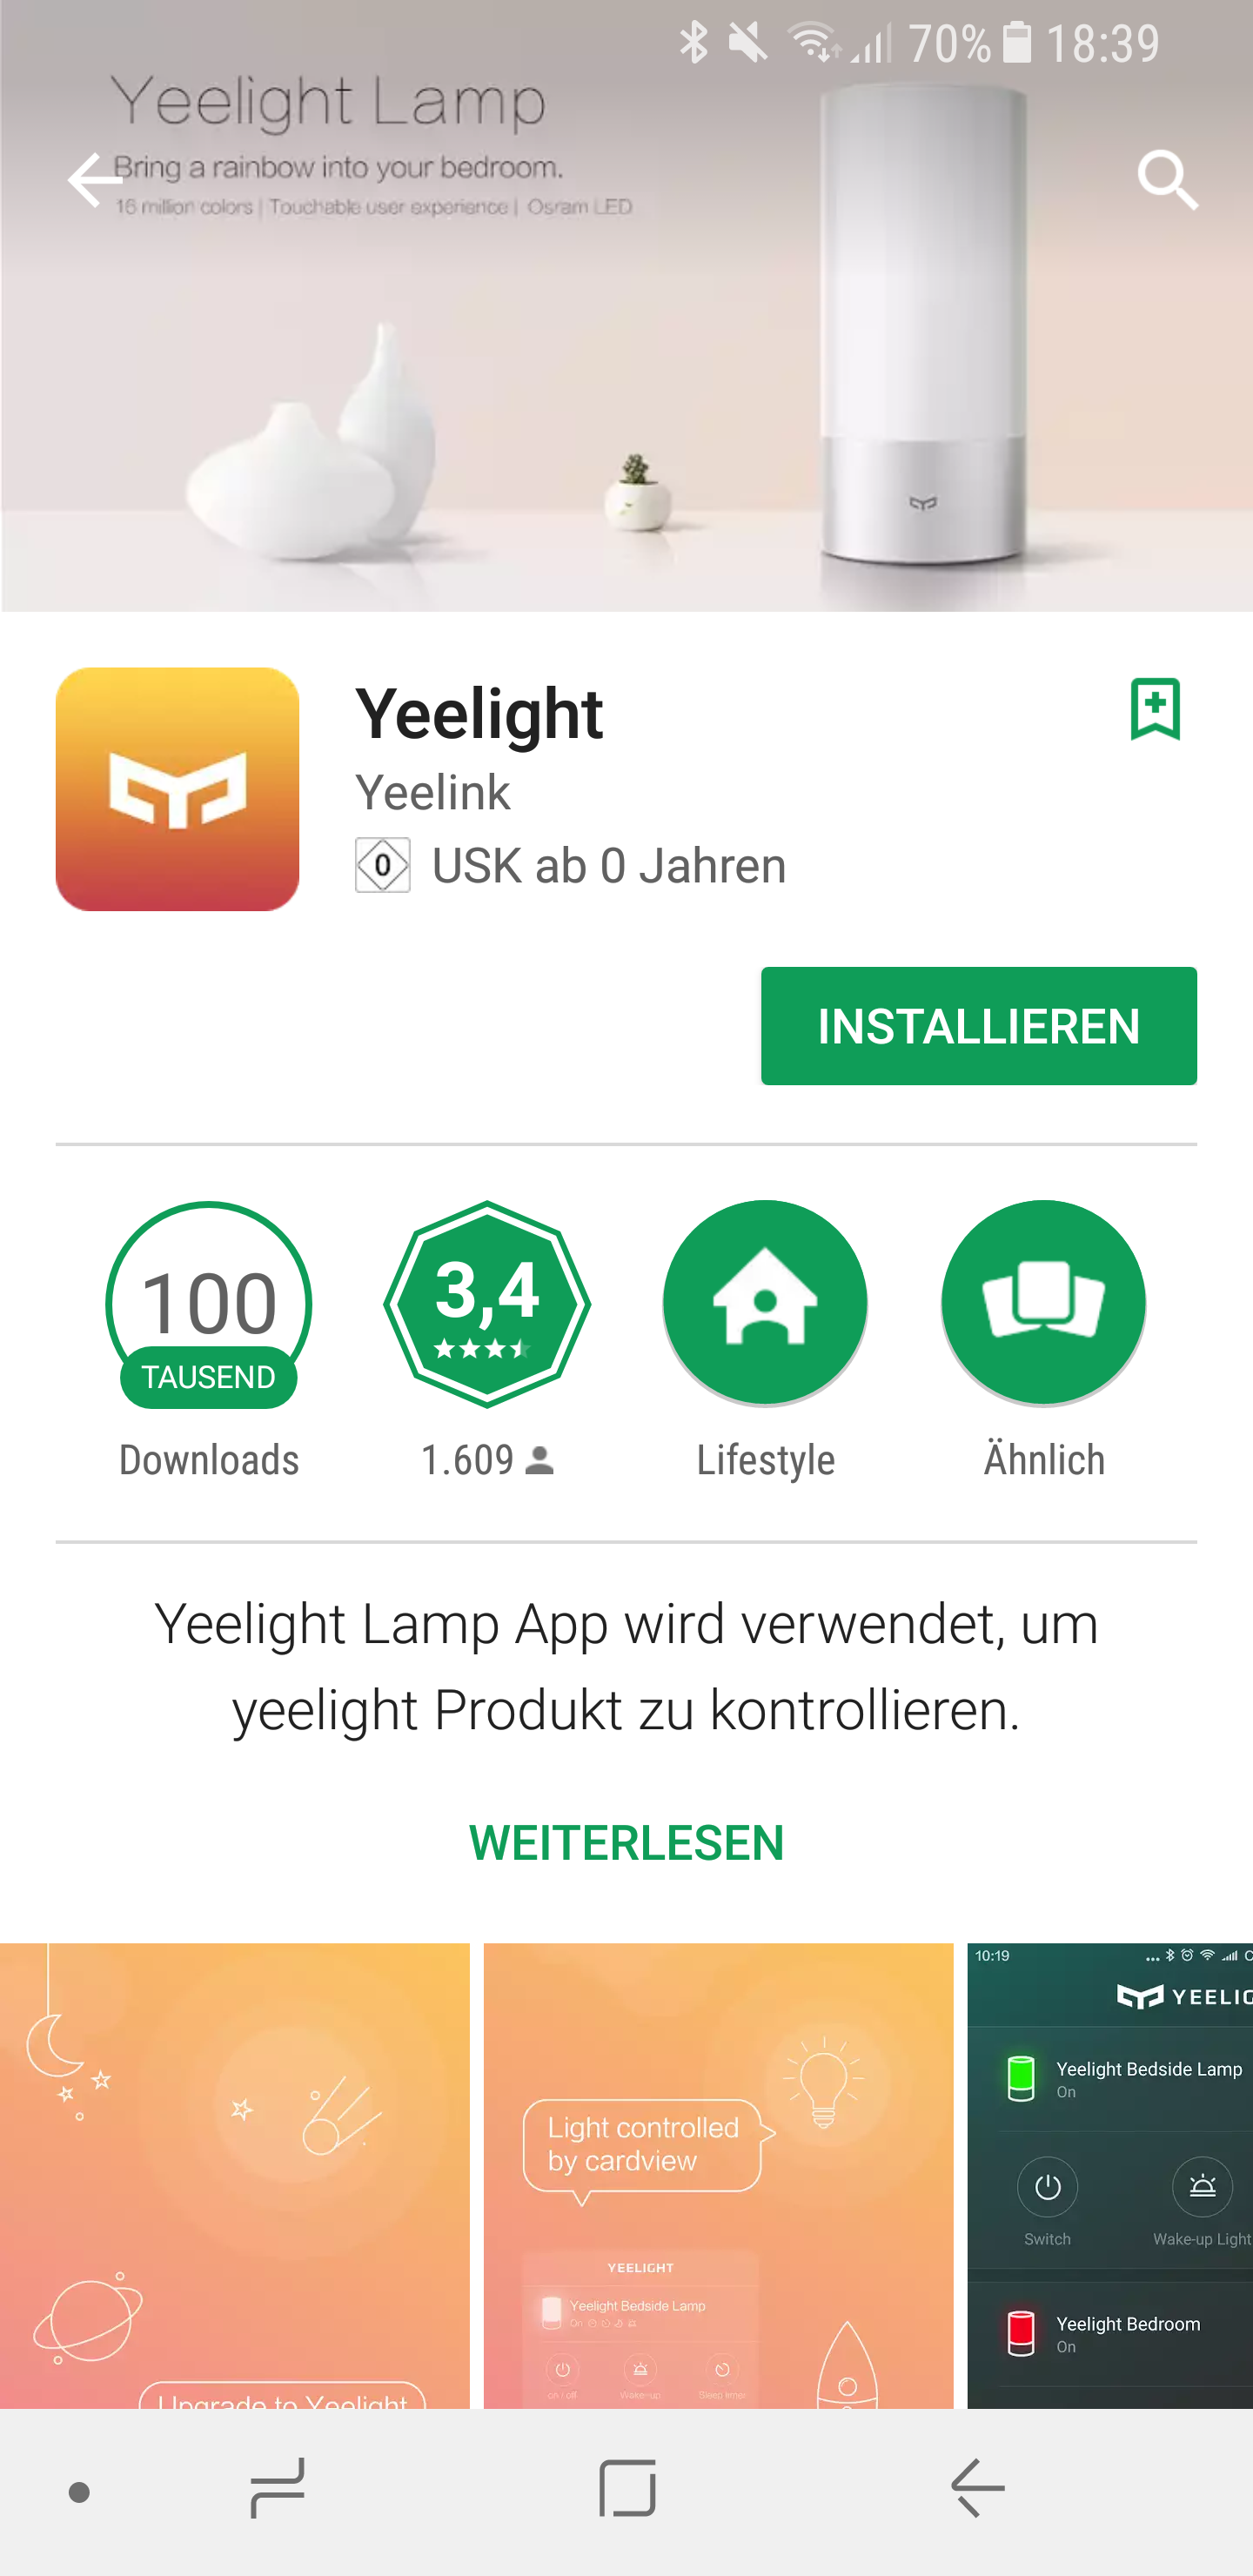 Xiaomi-Yeelight-Lampen-und-Glühbirnen-installieren-und-einrichten-1